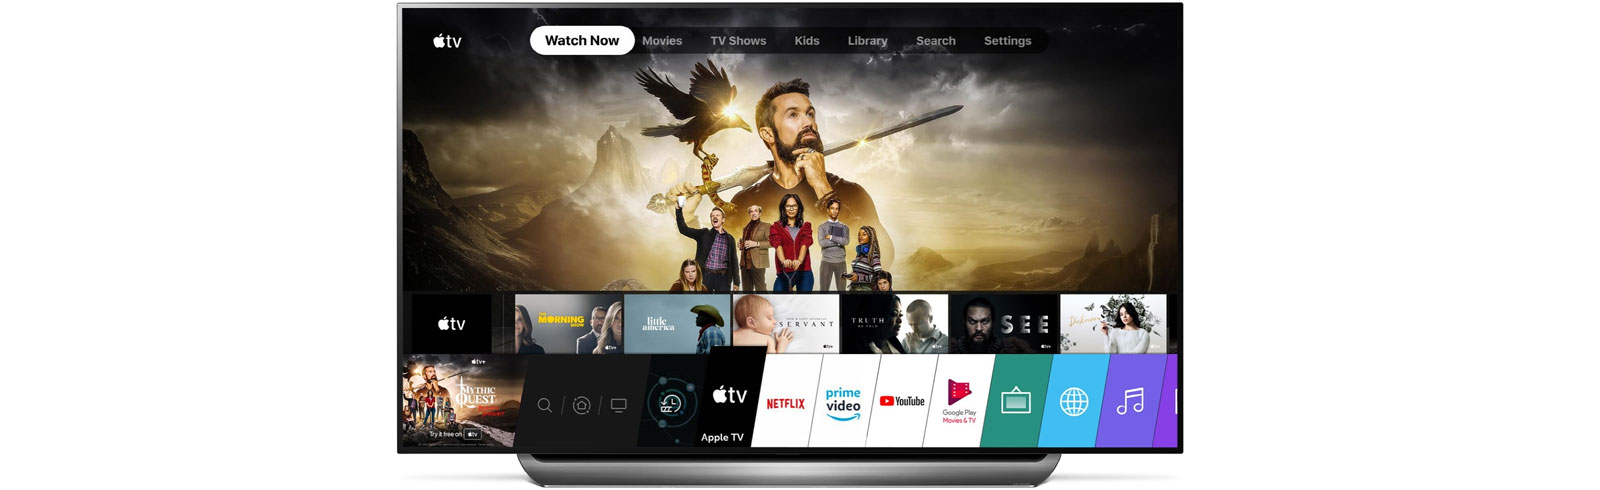 2019 and 2018 LG TVs get the Apple TV app Apple TV+ after an OTA update